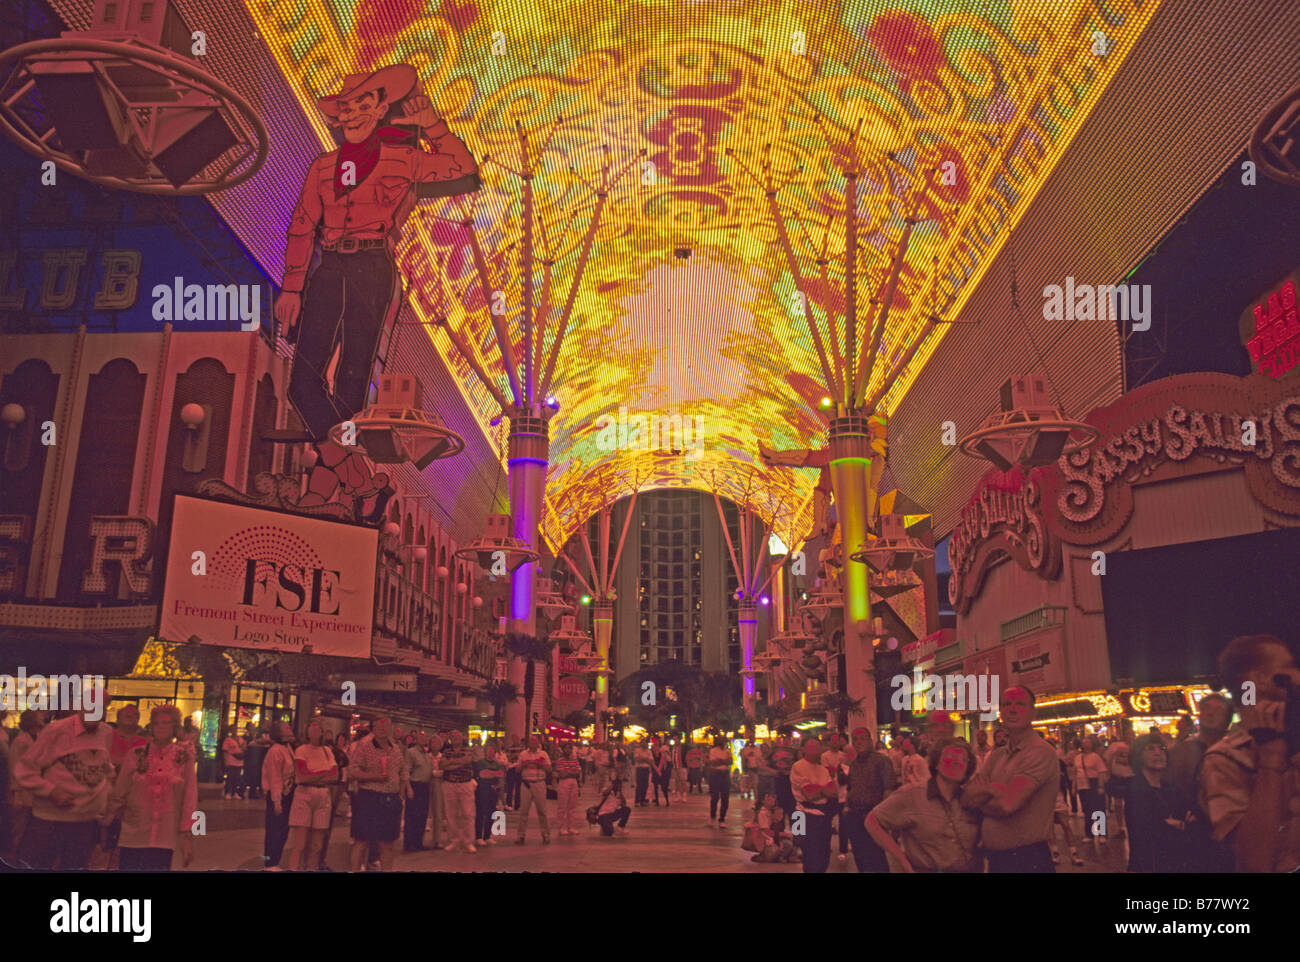 People watching ceiling light show fremont street experience las people watching ceiling light show fremont street experience las vegas nevada aloadofball Gallery